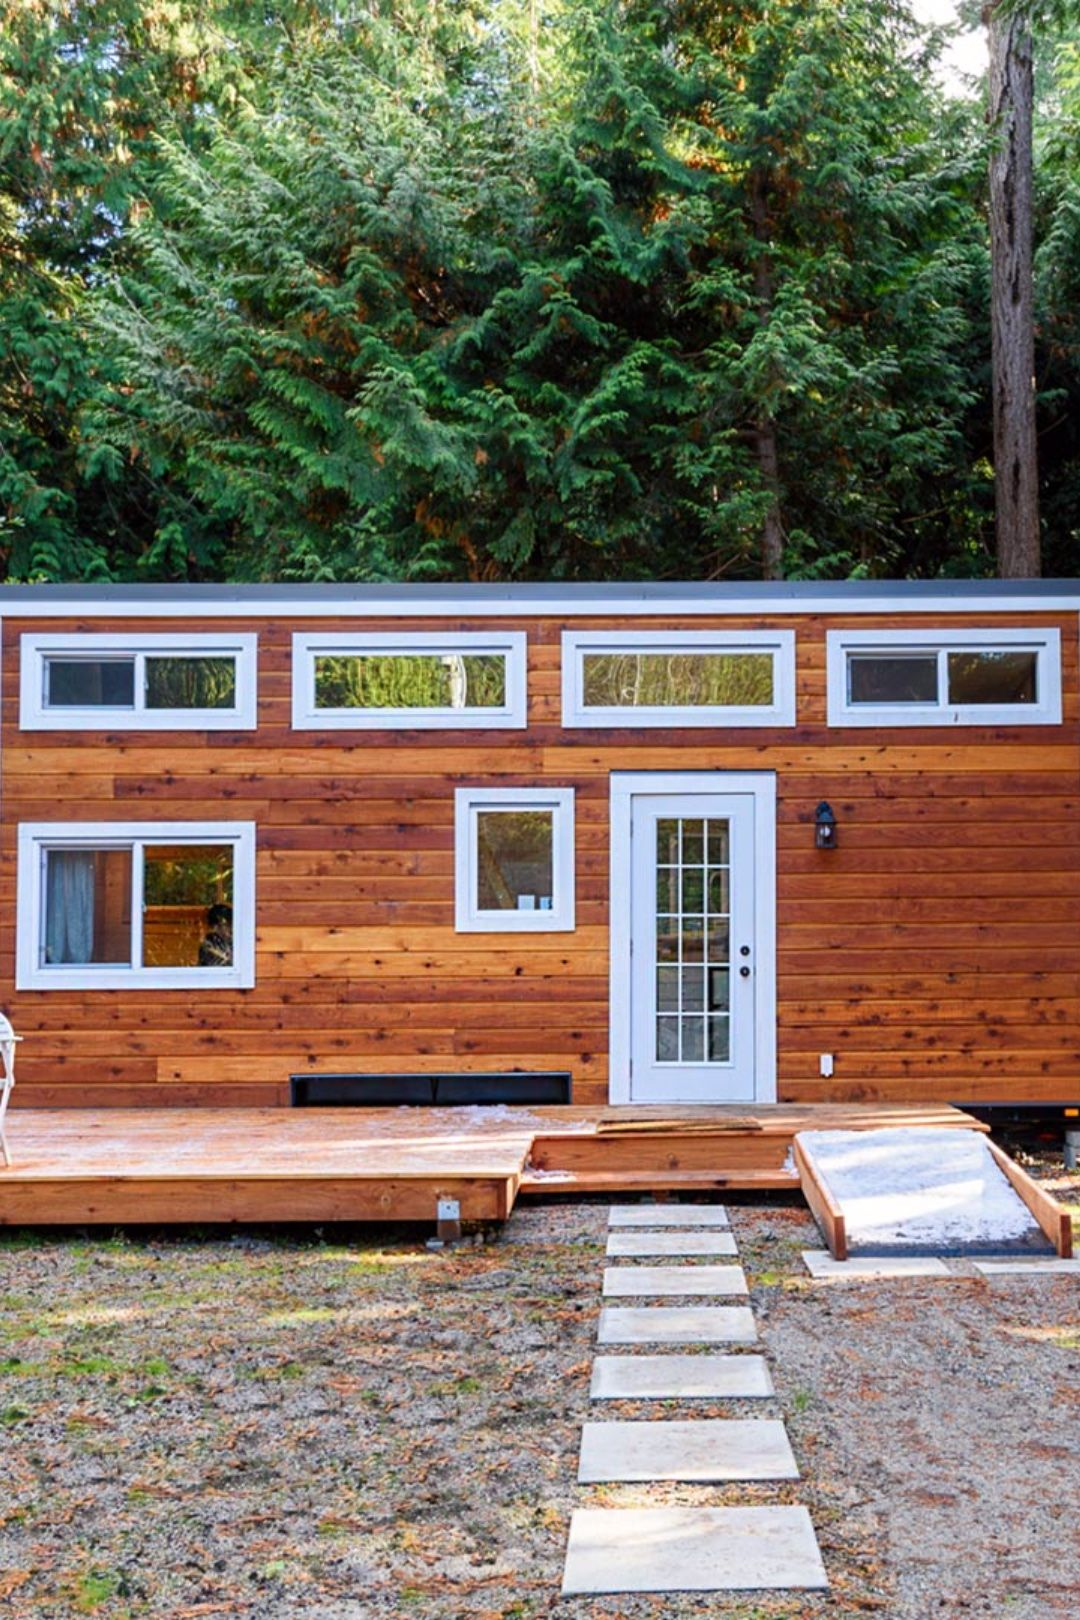 7 Alternative Housing Trends To Watch With Images Tiny House